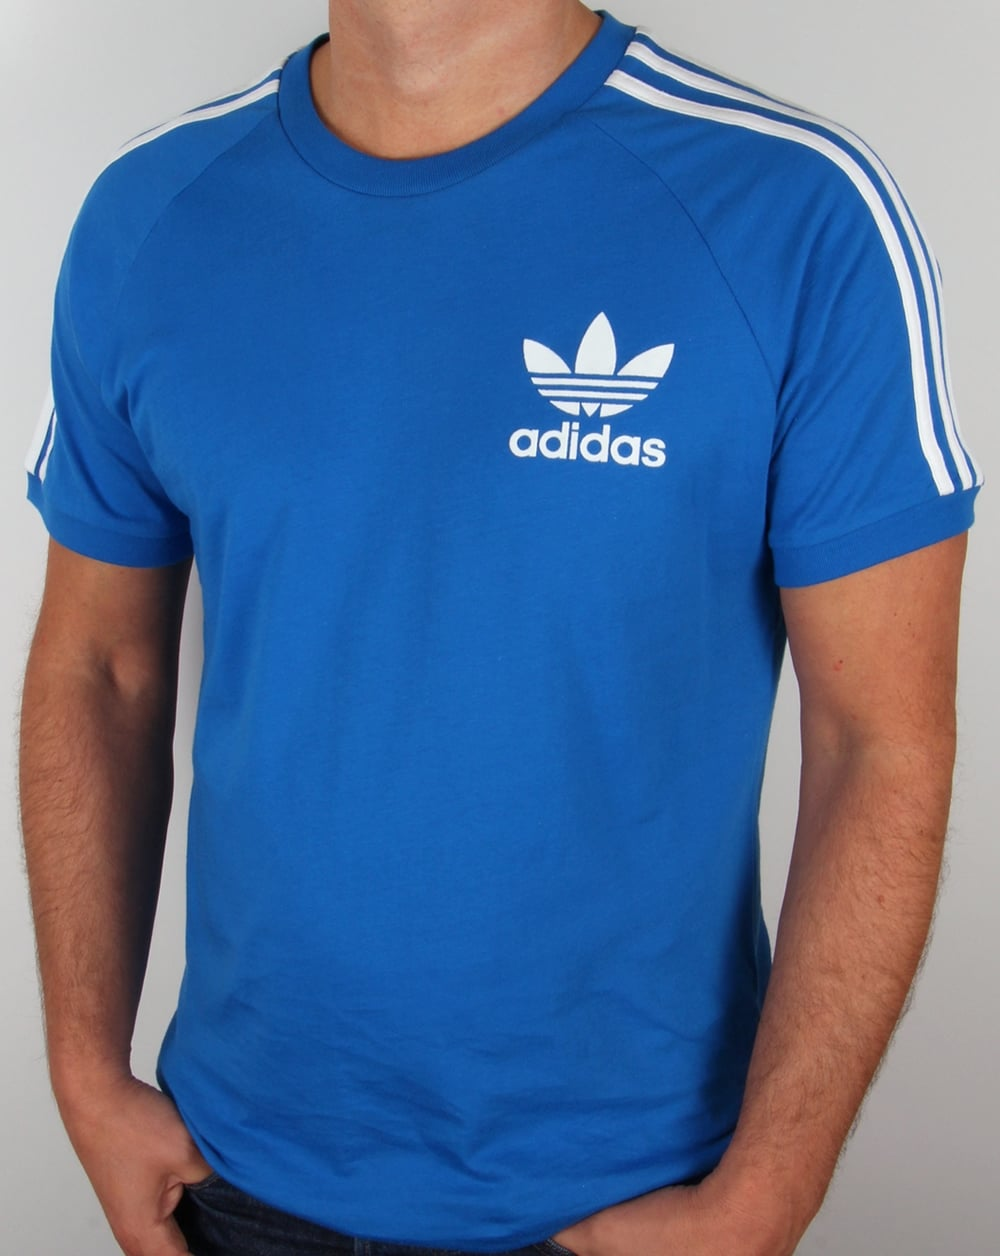 adidas Originals Adidas Originals 3 Stripes T-shirt Bluebird Blue